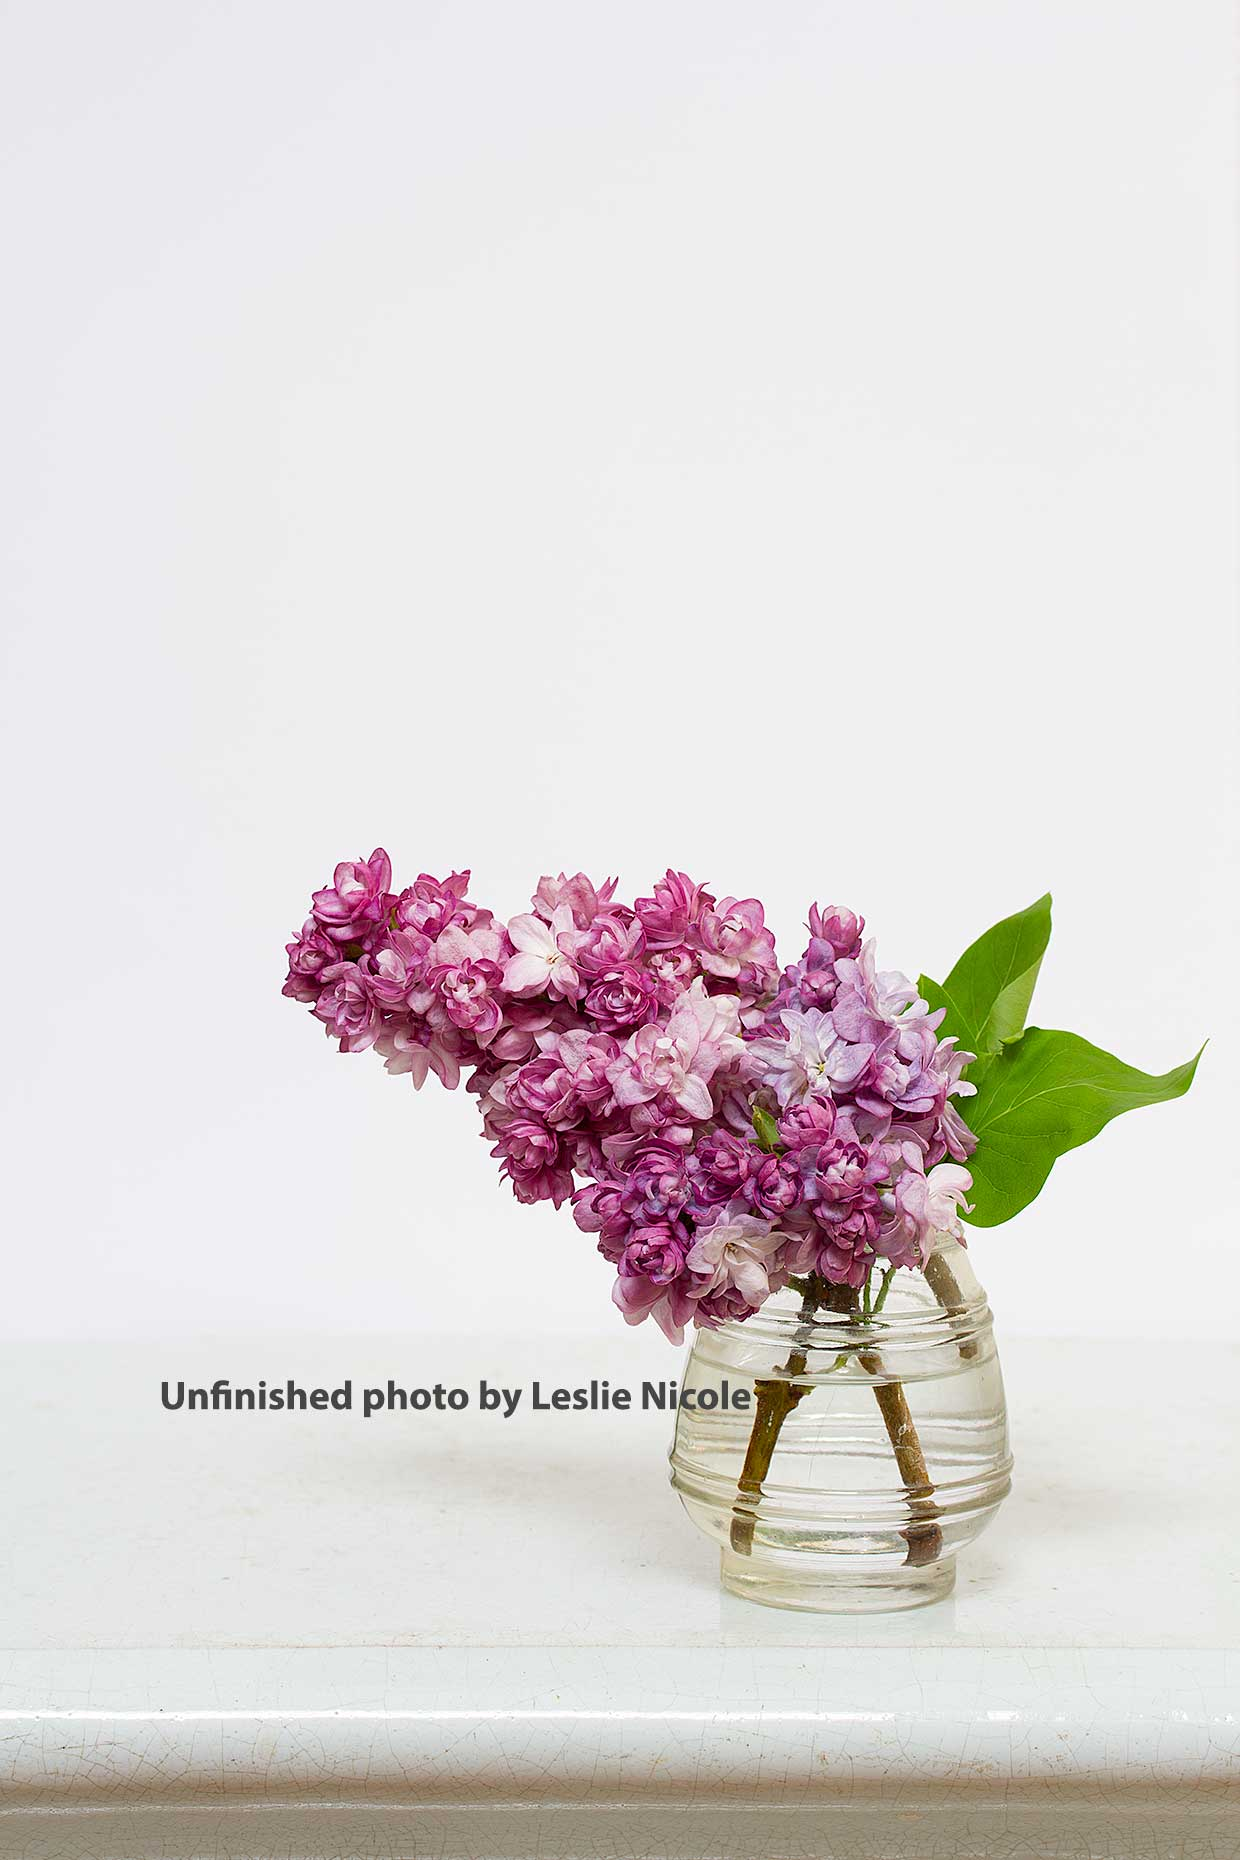 Original photo of Lilac floral before post-processing.